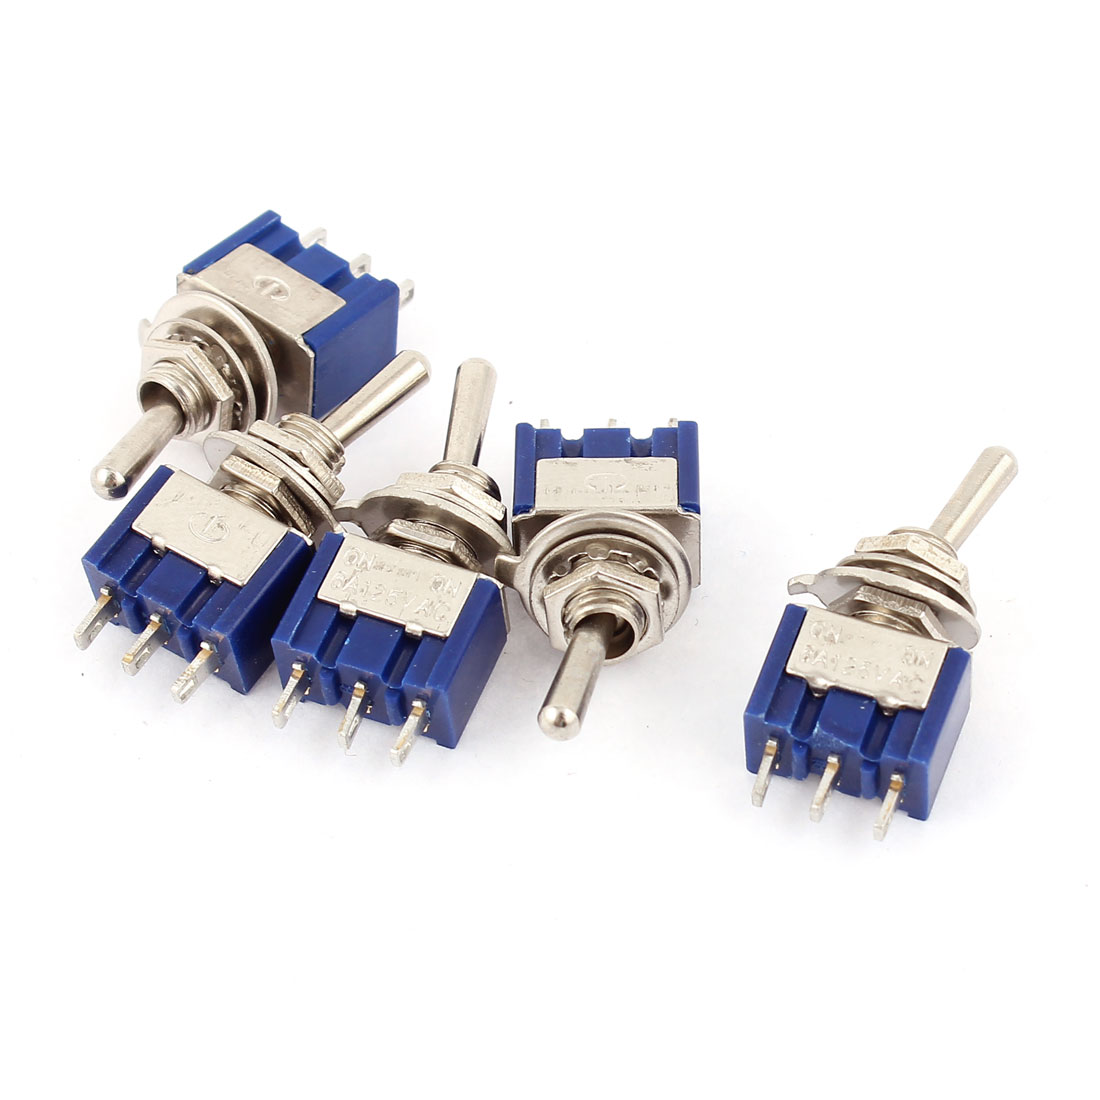 AC 125V 6A 3 Pins ON-ON 2 Positions SPDT Toggle Switch Dark Blue 5pcs